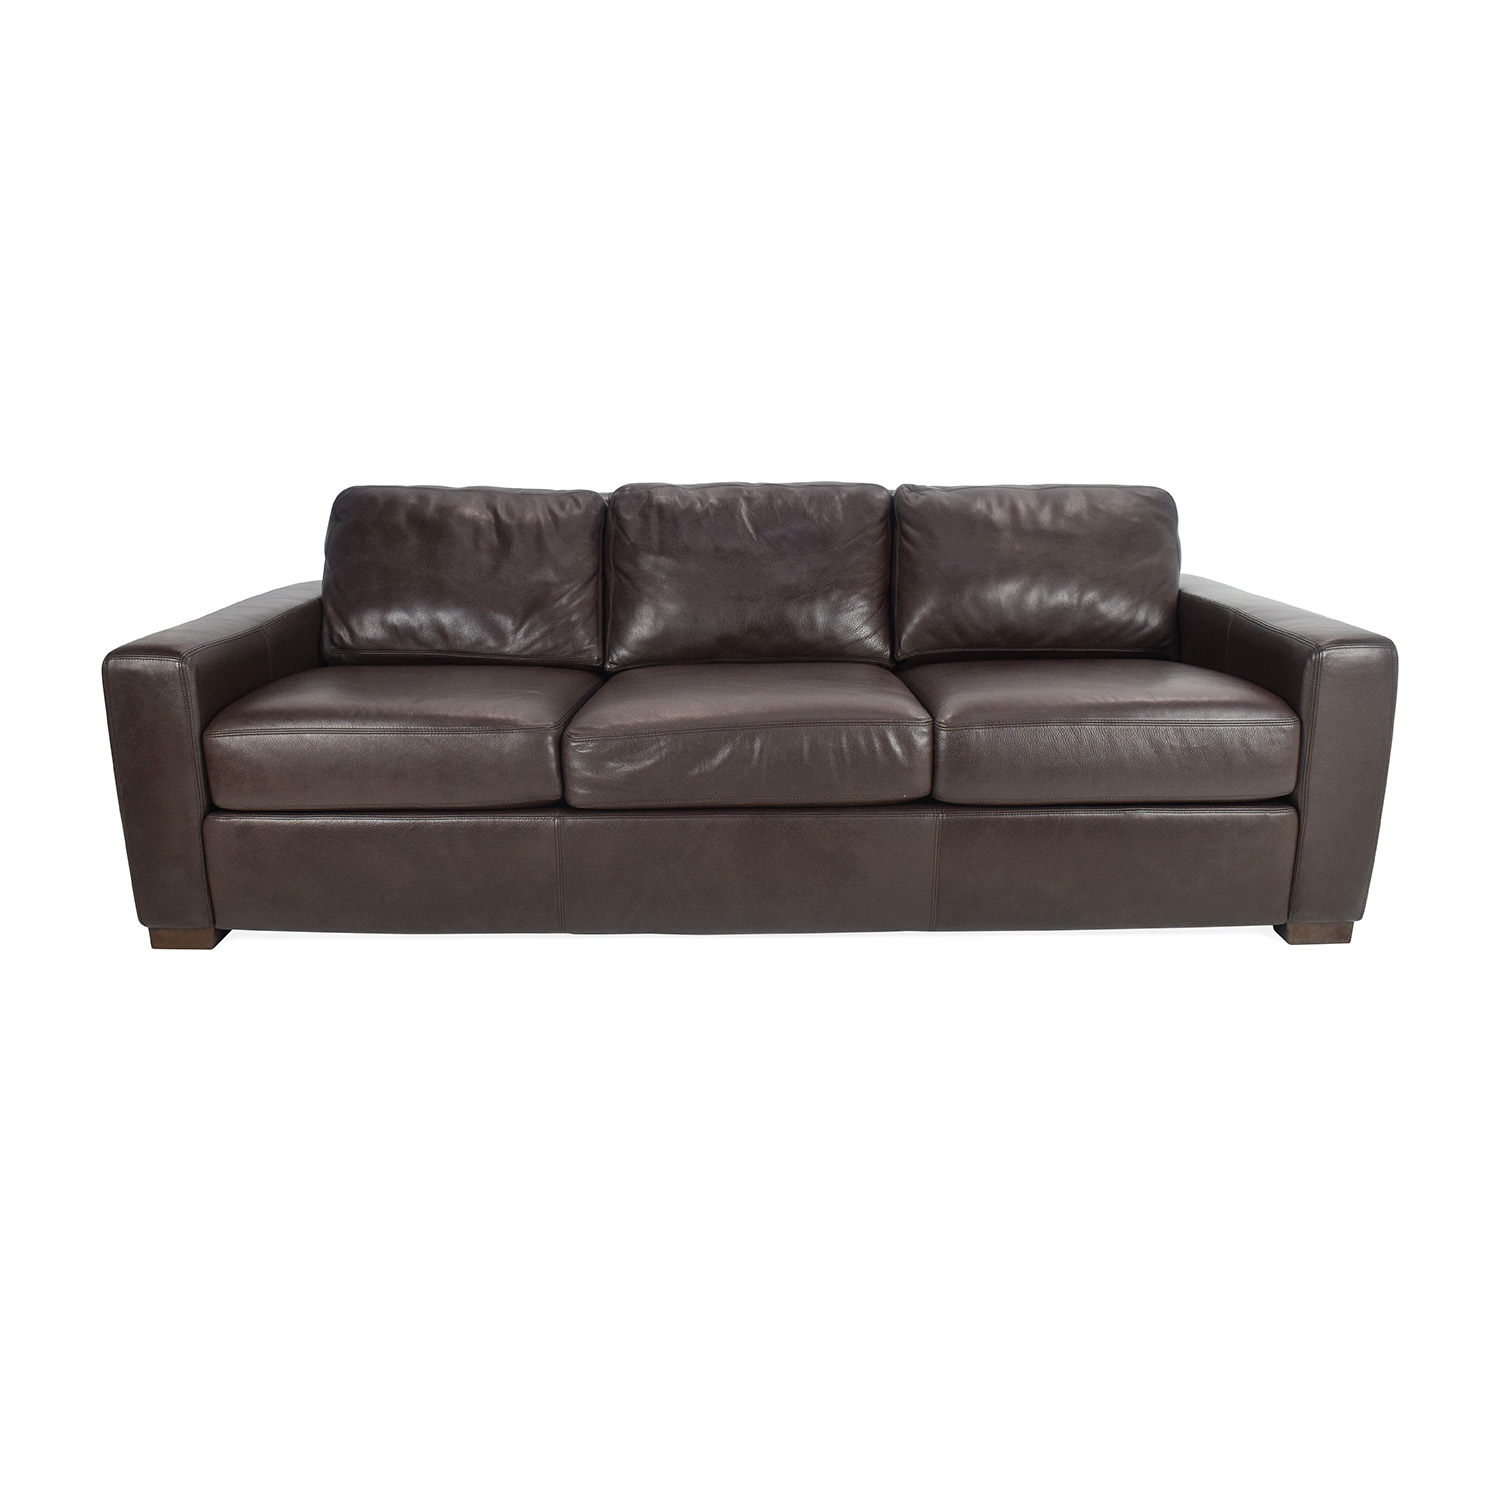 Second hand designer sofas leather sofa ebay thesofa for Second hand sofas